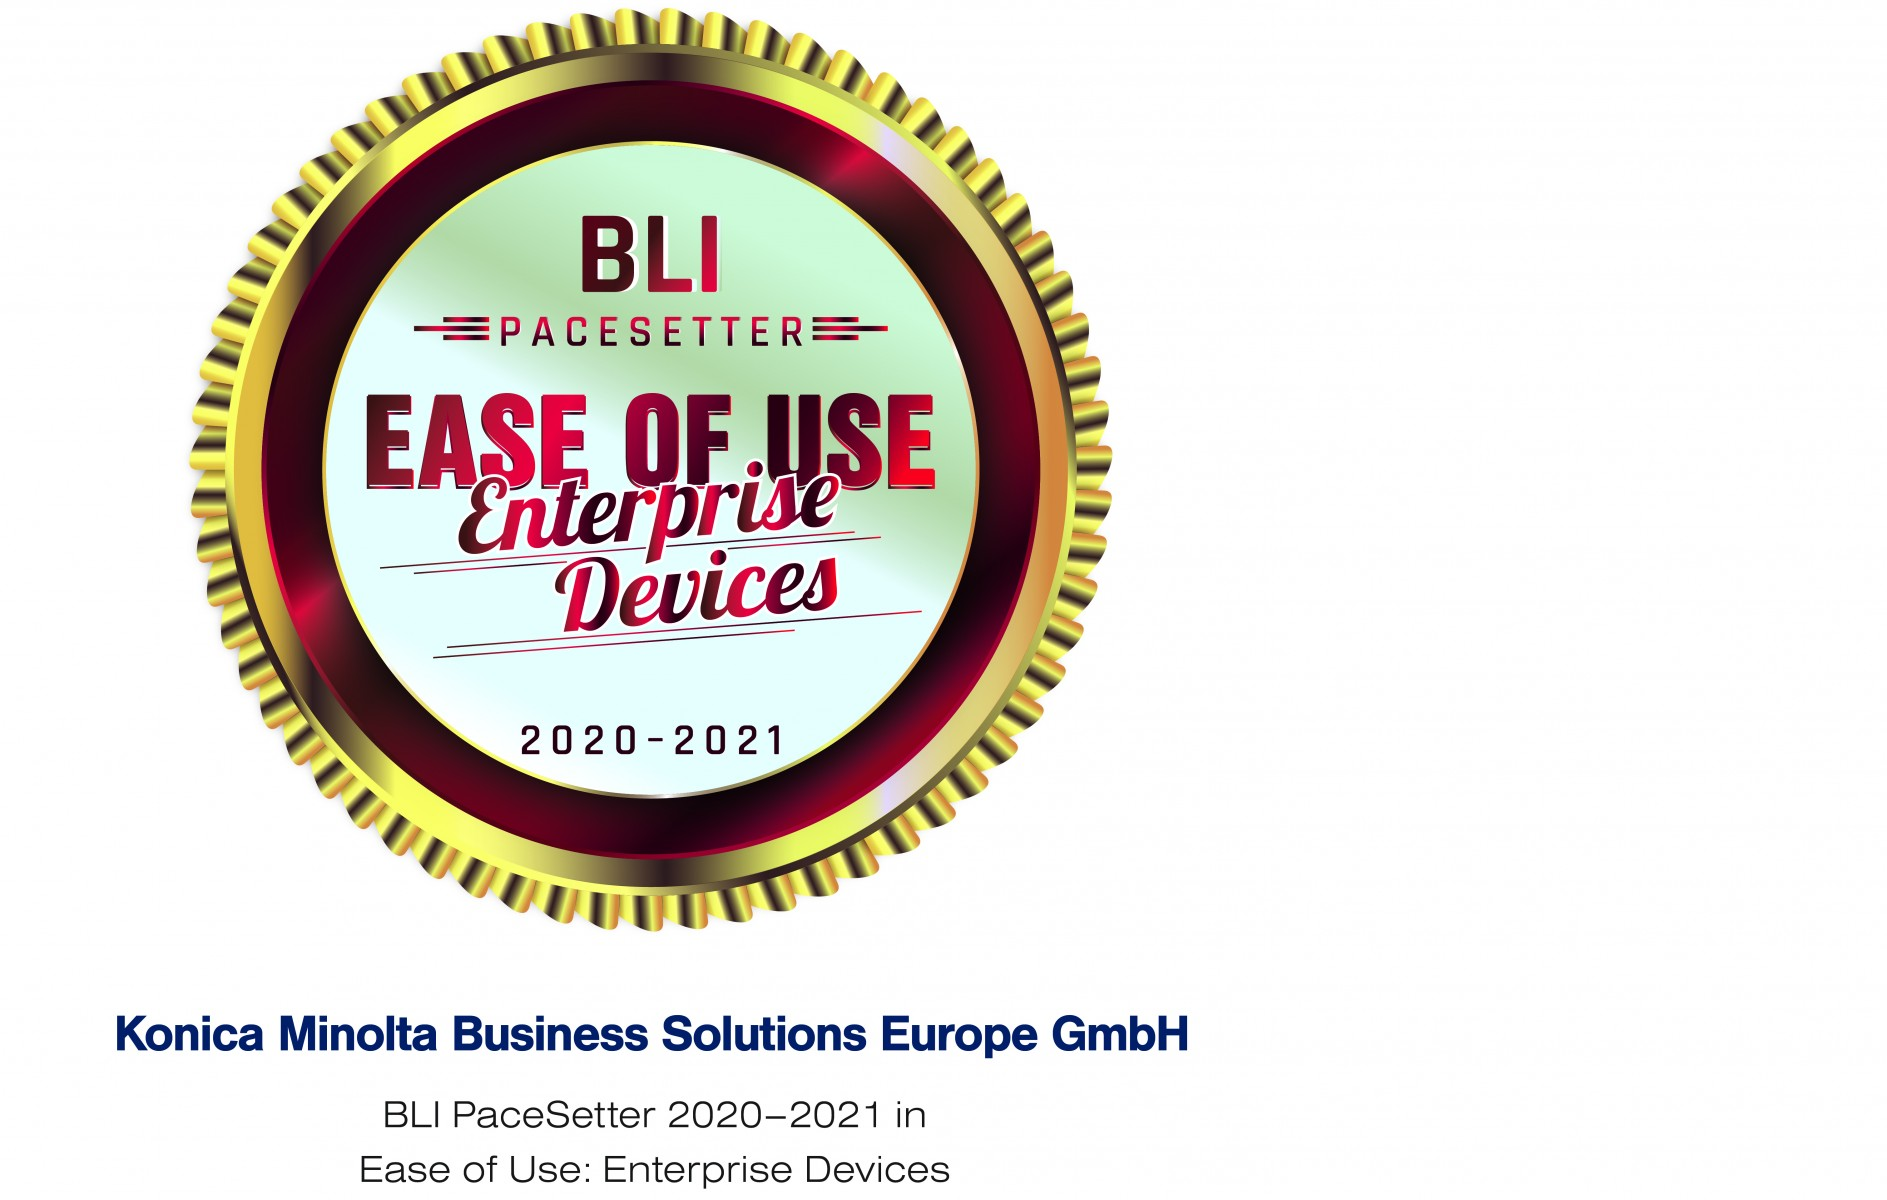 BLI EASE OF USE ENTERPRISE DEVICES